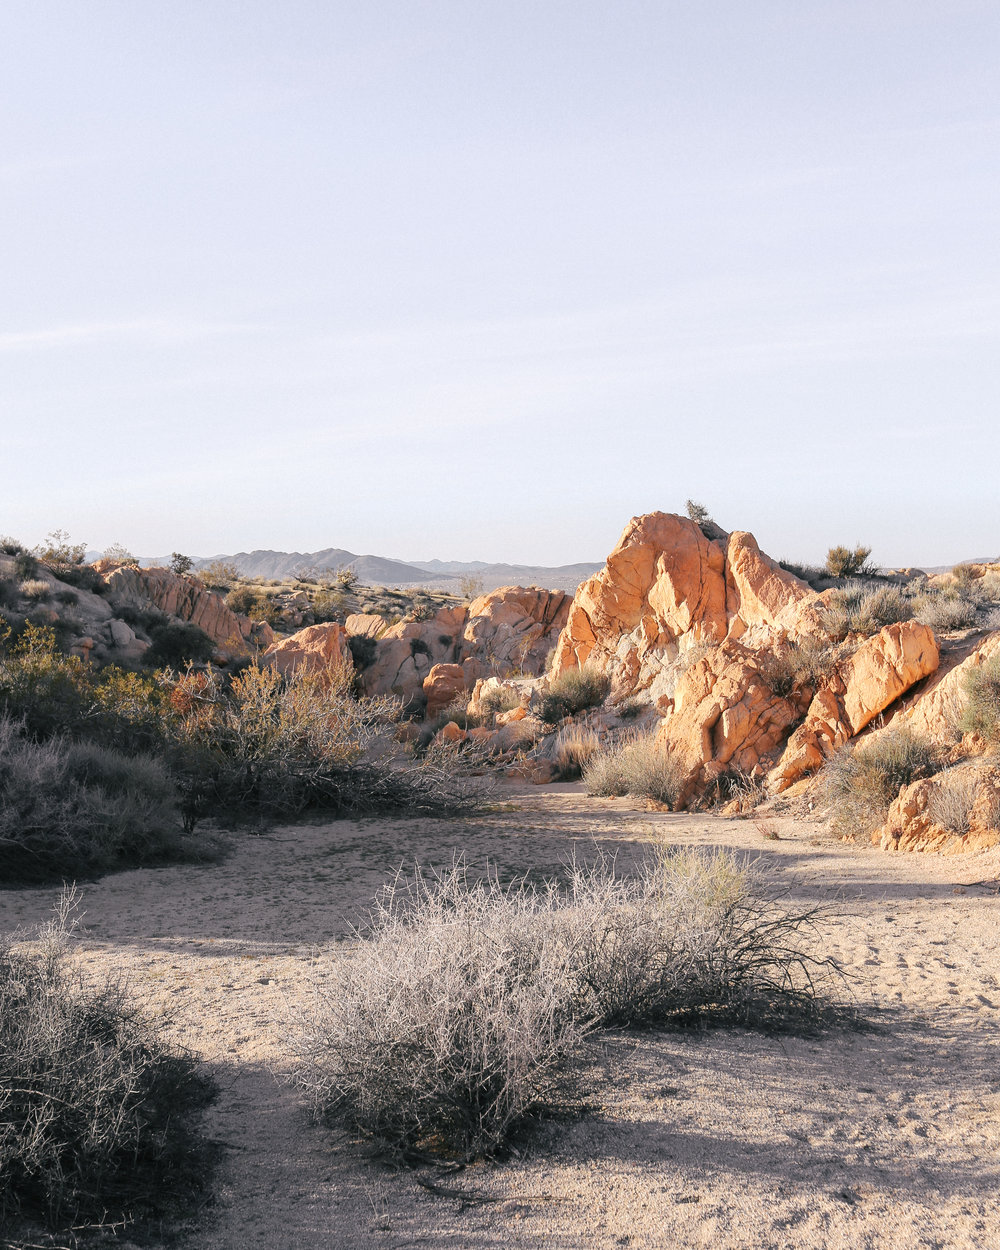 The Cosmic American Family's favorite trails in Joshua Tree, CA